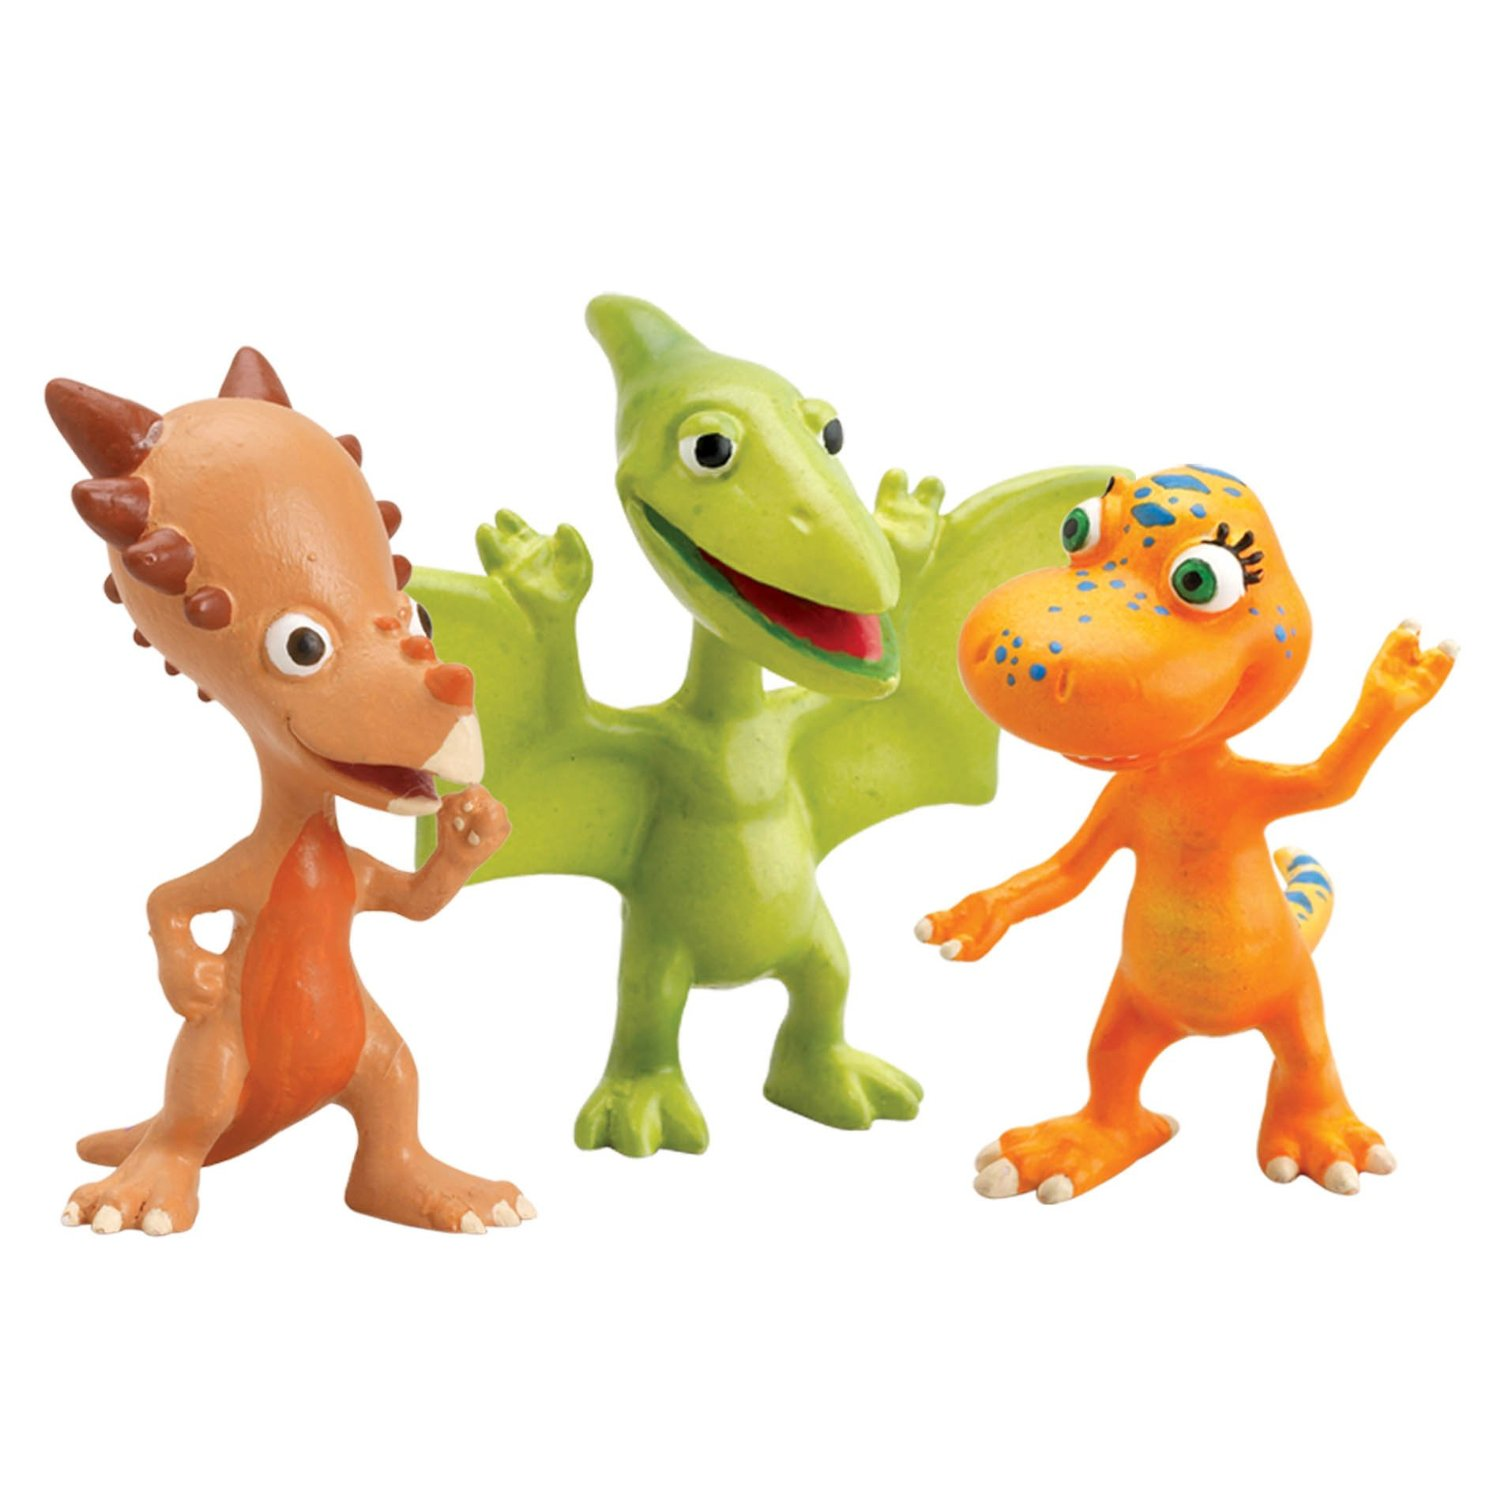 Dinosaur Train Toys : Learning curve dinosaur train collectible figures to